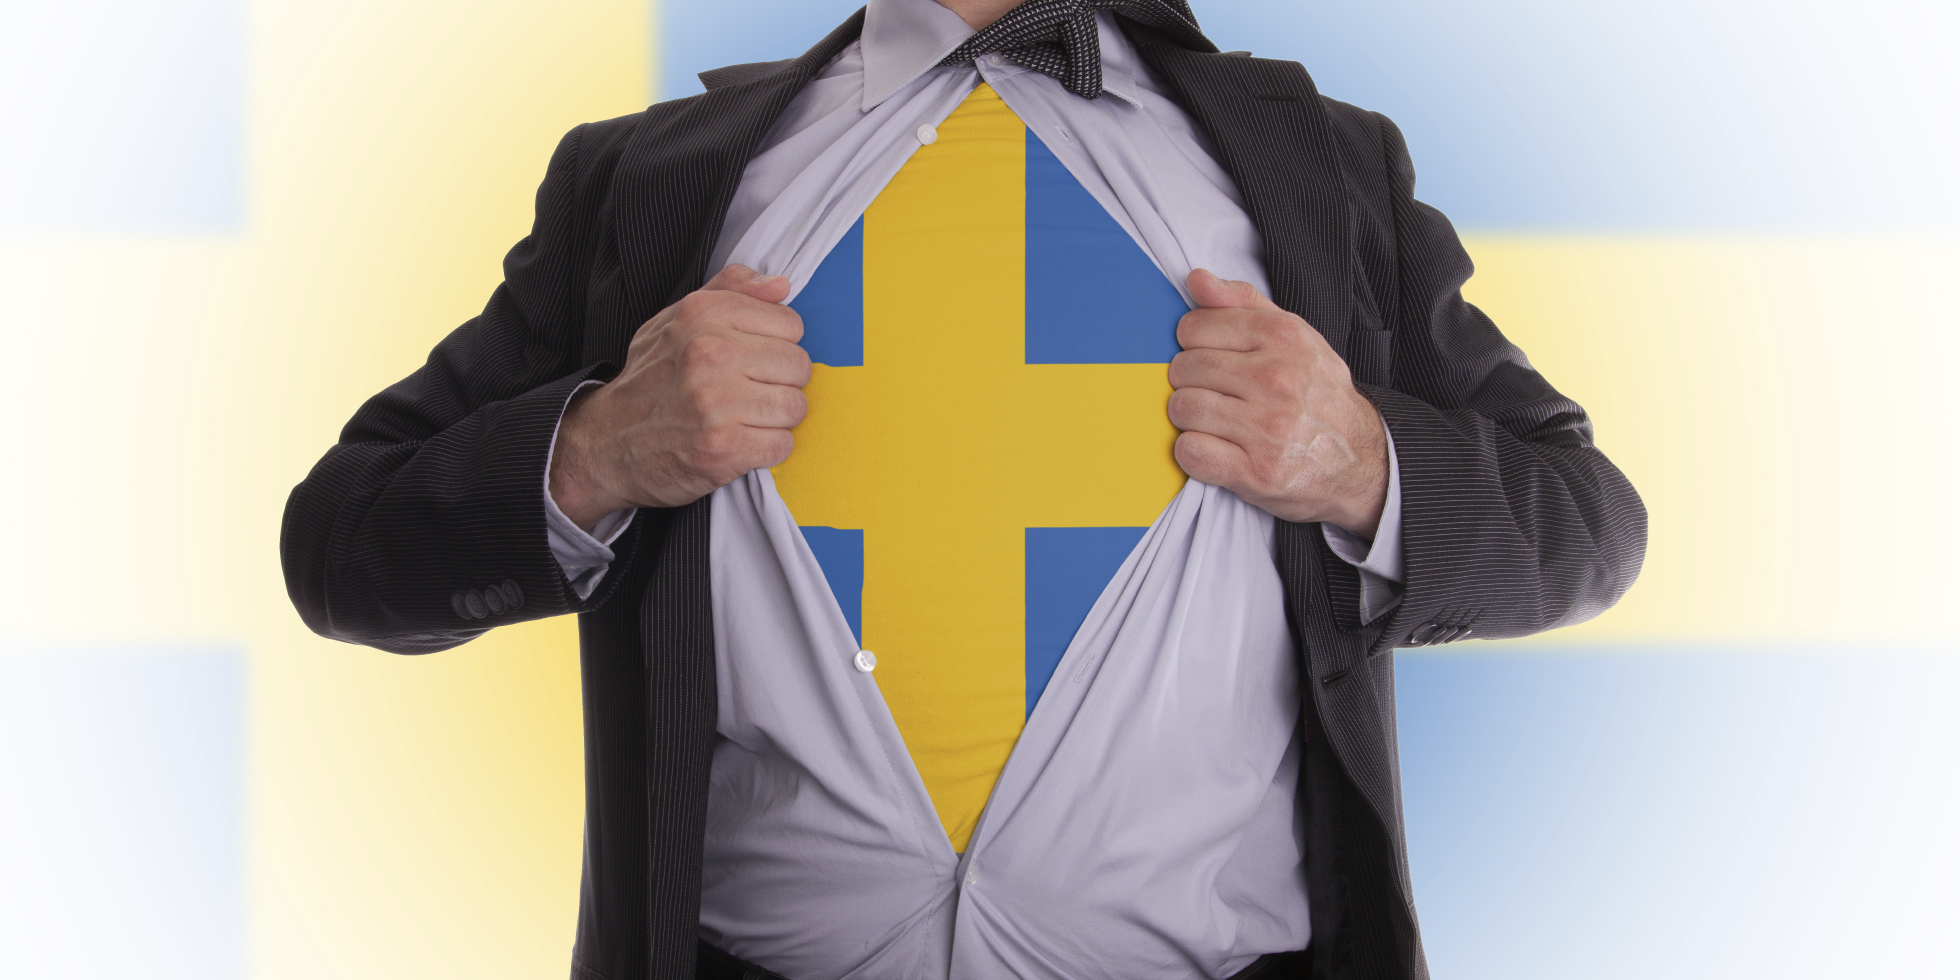 Business man rips open his shirt to show his Swedish flag t-shirt